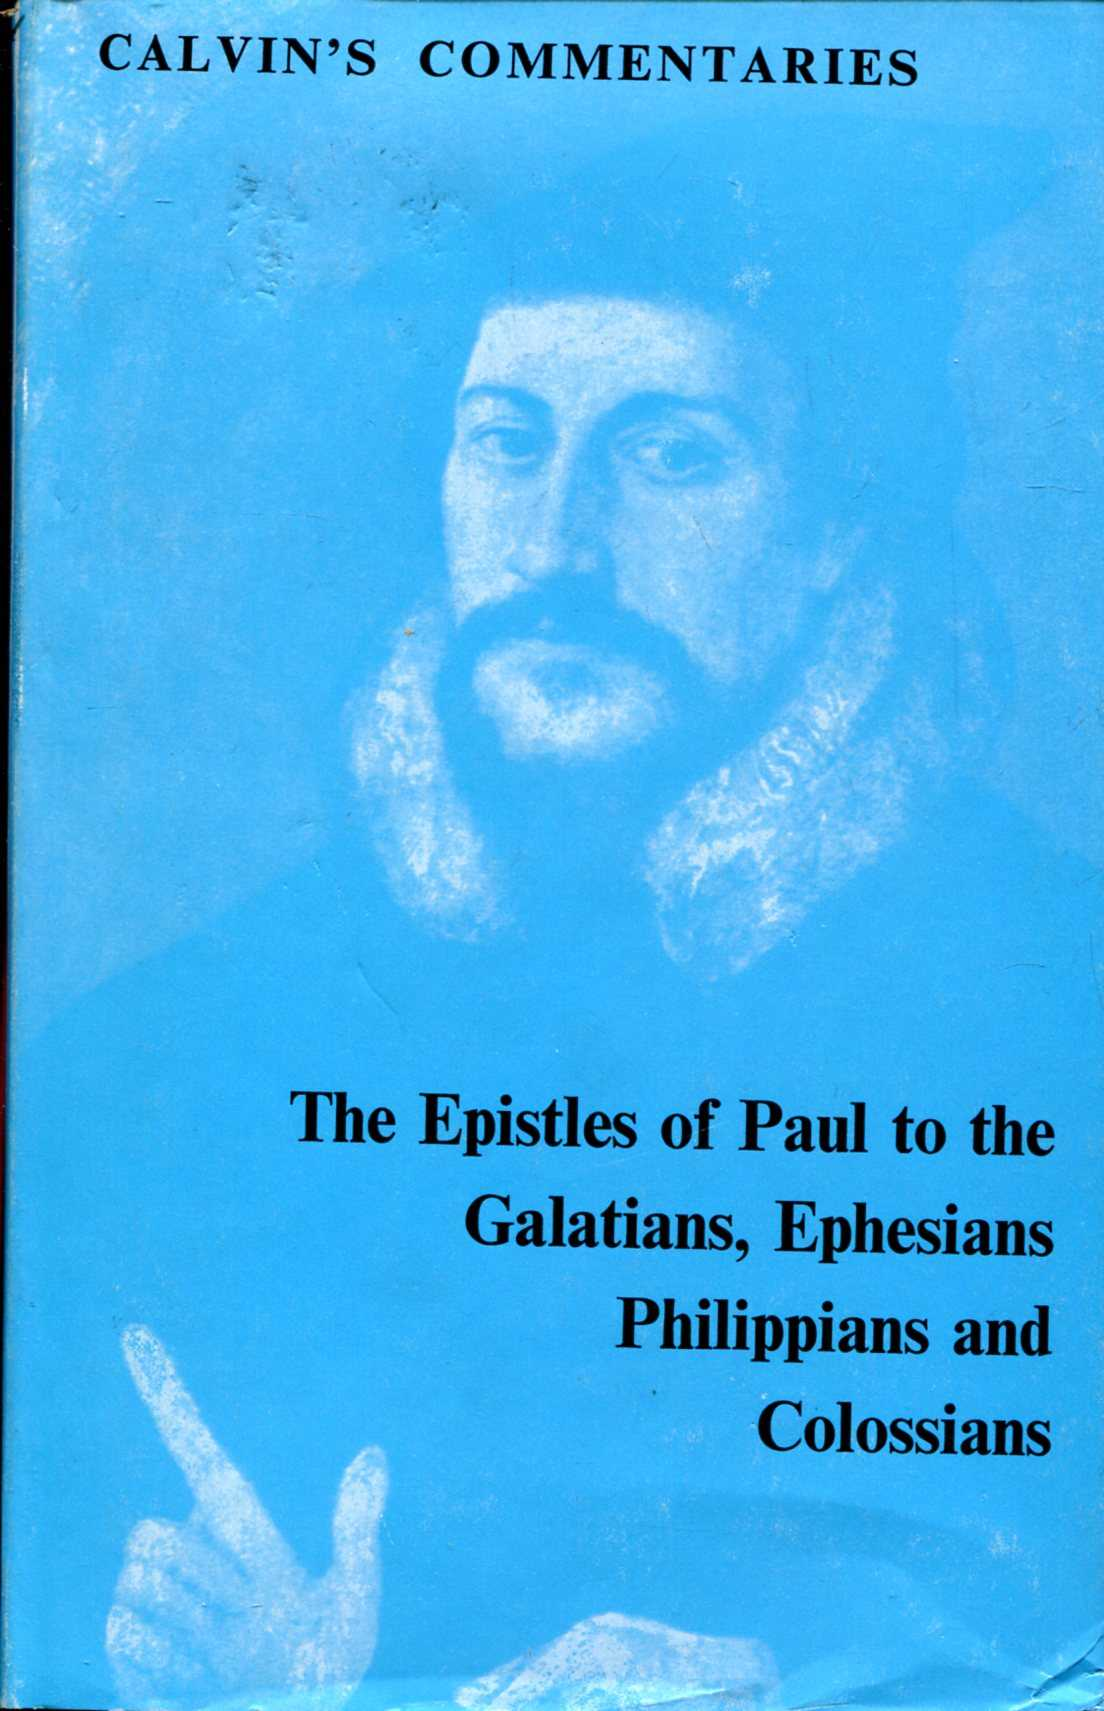 Image for Calvin's Commentaries : The Epistles of Paul the Apostle to the Galatians, Ephesians, Philippians and Colossians